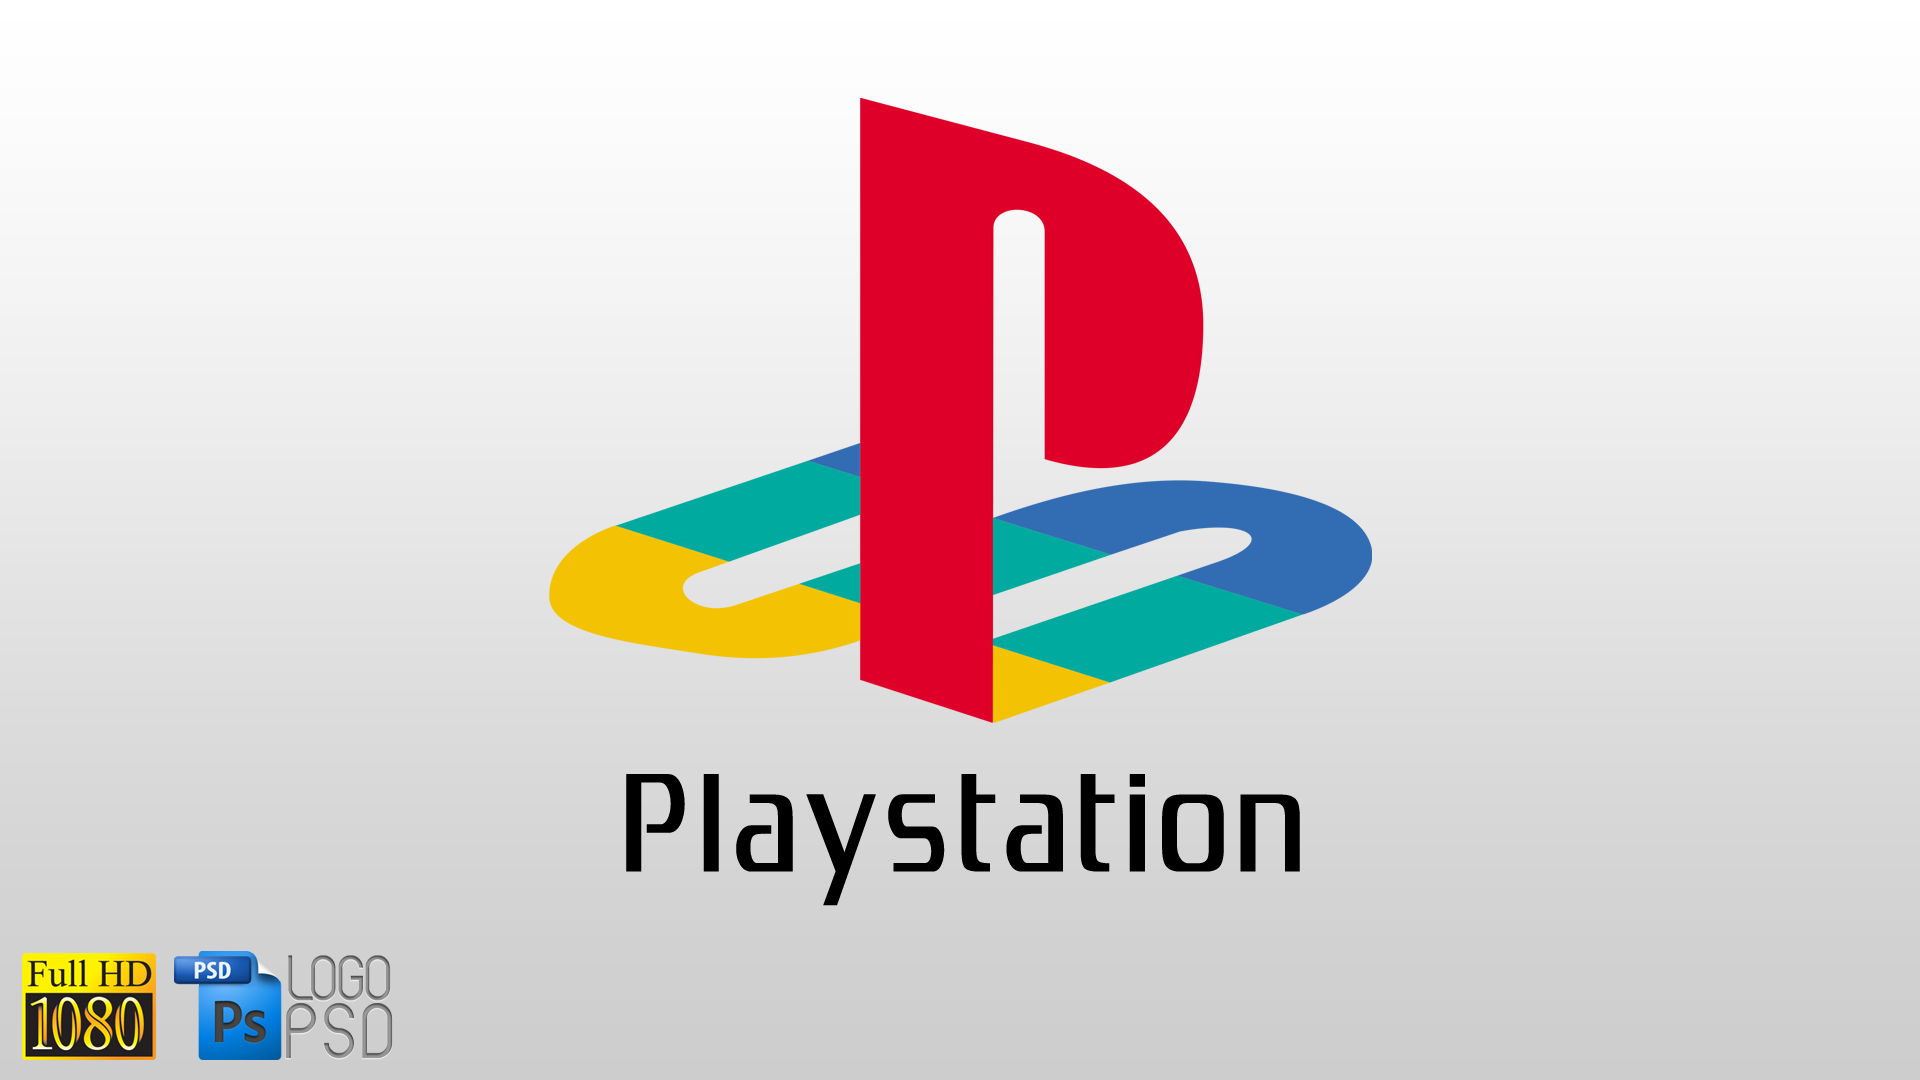 playstation 1 logo psd by iampxr http www liannmarketing com rh pinterest com playstation 1 logo wallpaper playstation 1 logo png